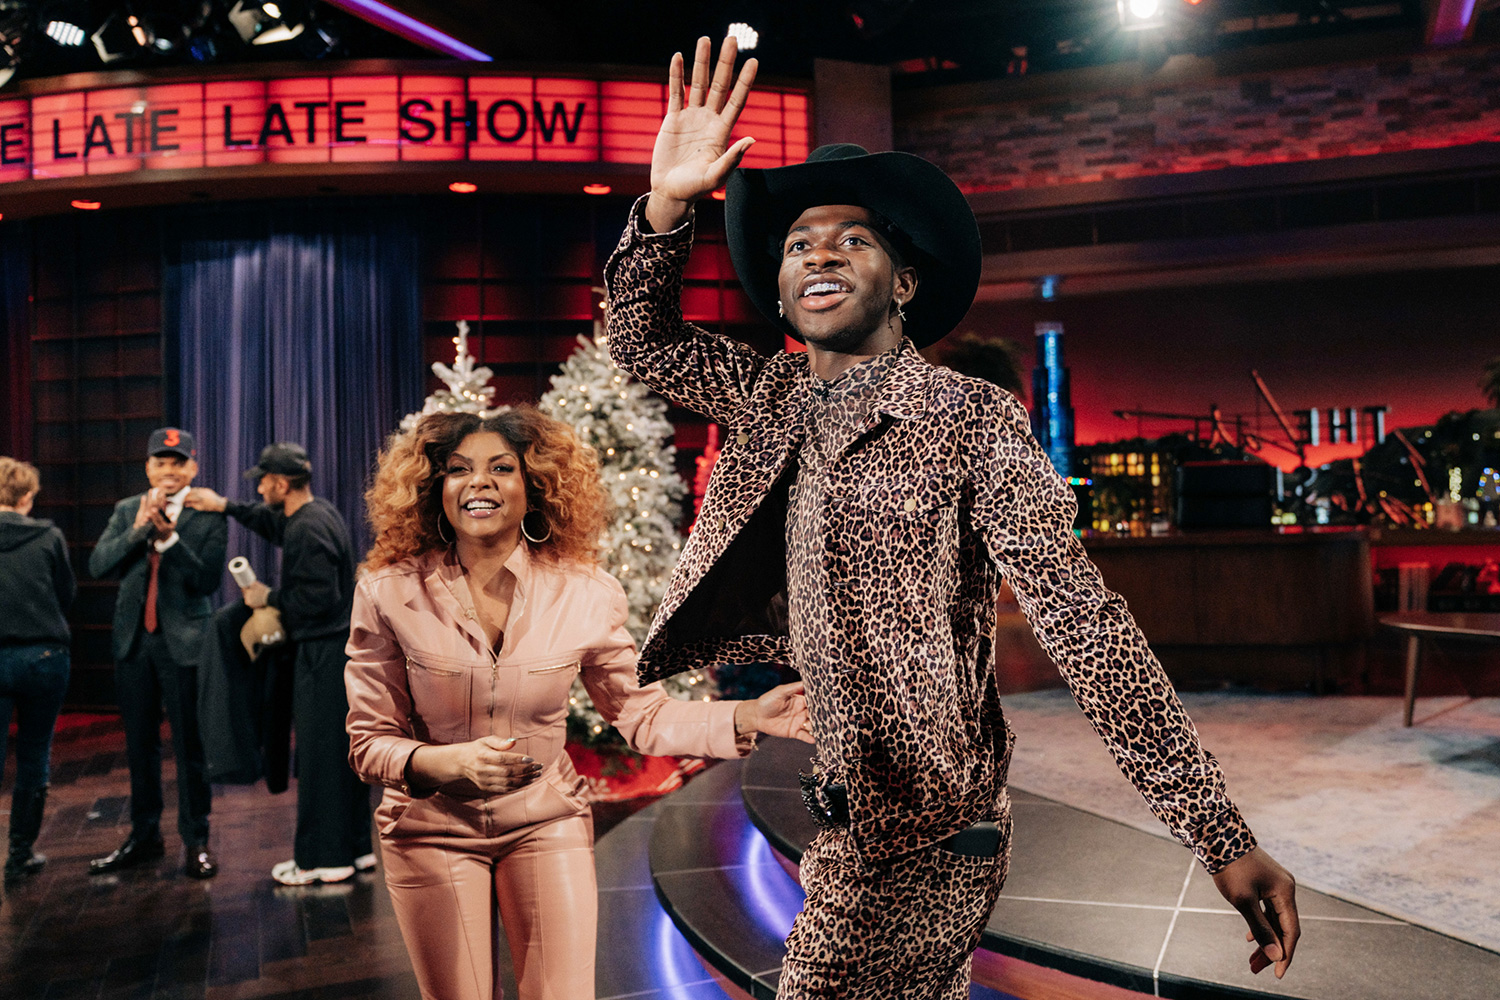 Chance the Rapper guest-hosts The Late Late Show with James Corden airing Monday, December 16, 2019, with guests Taraji P. Henson, Lil Nas X,